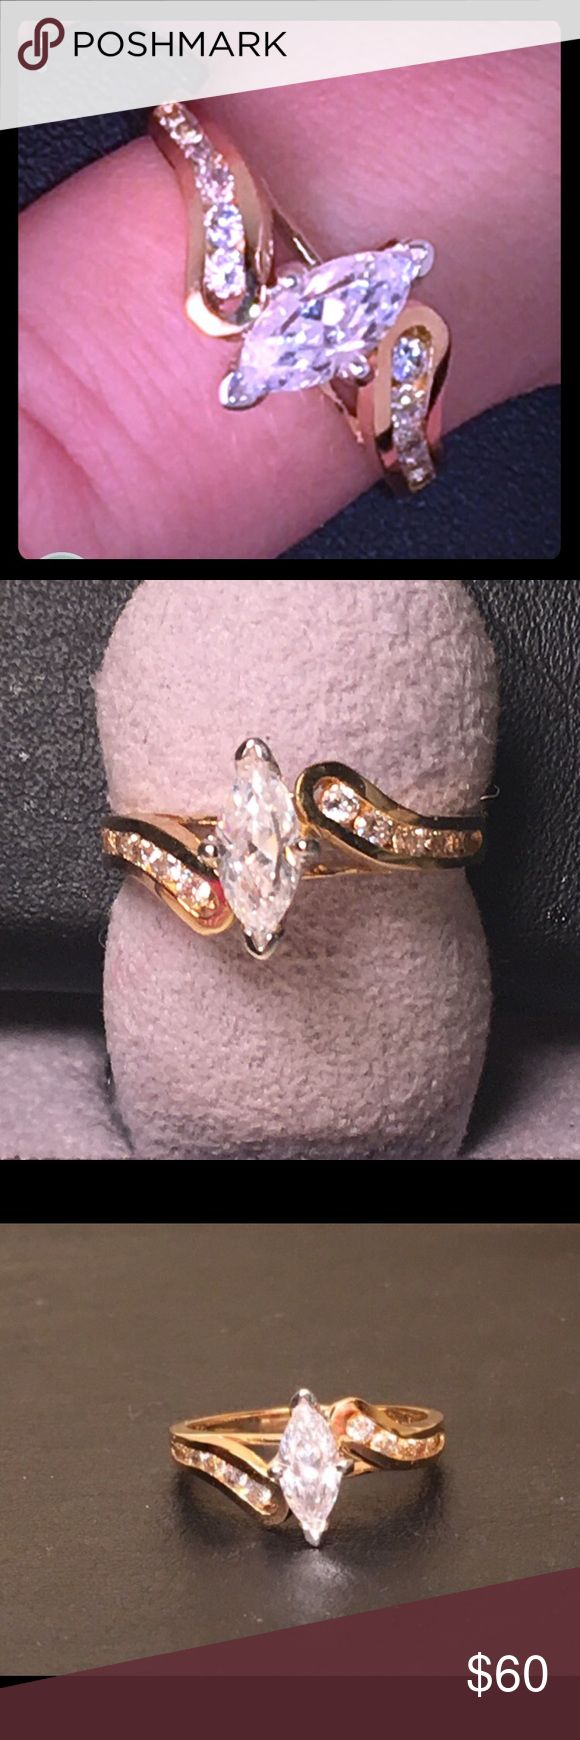 Cubic Zirconium GoldPlated Ring Gorgeous in person Flexible on price. Standard Ring Size. This is what is called a demo ring. My family used to be in the jewelry business. So to be clear and up front this is not entirely real. I have worn the same one for over 2 years almost daily and it is still in immaculate condition. It is brass, but gold plated. It is also cubic zirconium. Amazing fashion ring or temporary engagement ring until you can get a real one. Please let me know if you have any…